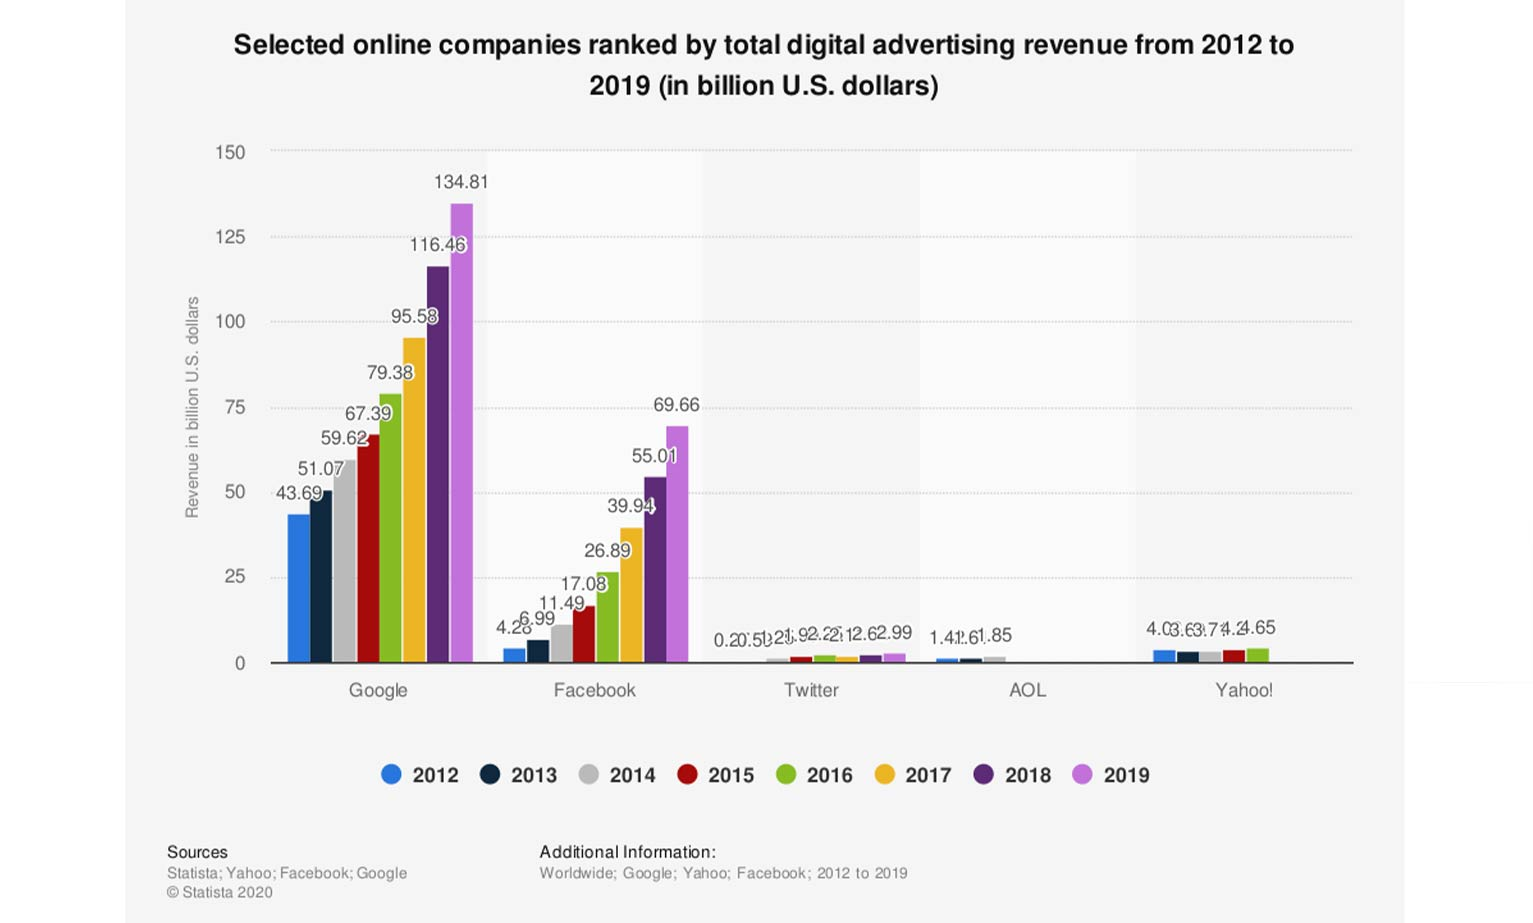 Bar graph showing digital advertising revenue from 2012-2019 for Google, Facebook, Twitter, AOL and Yahoo.